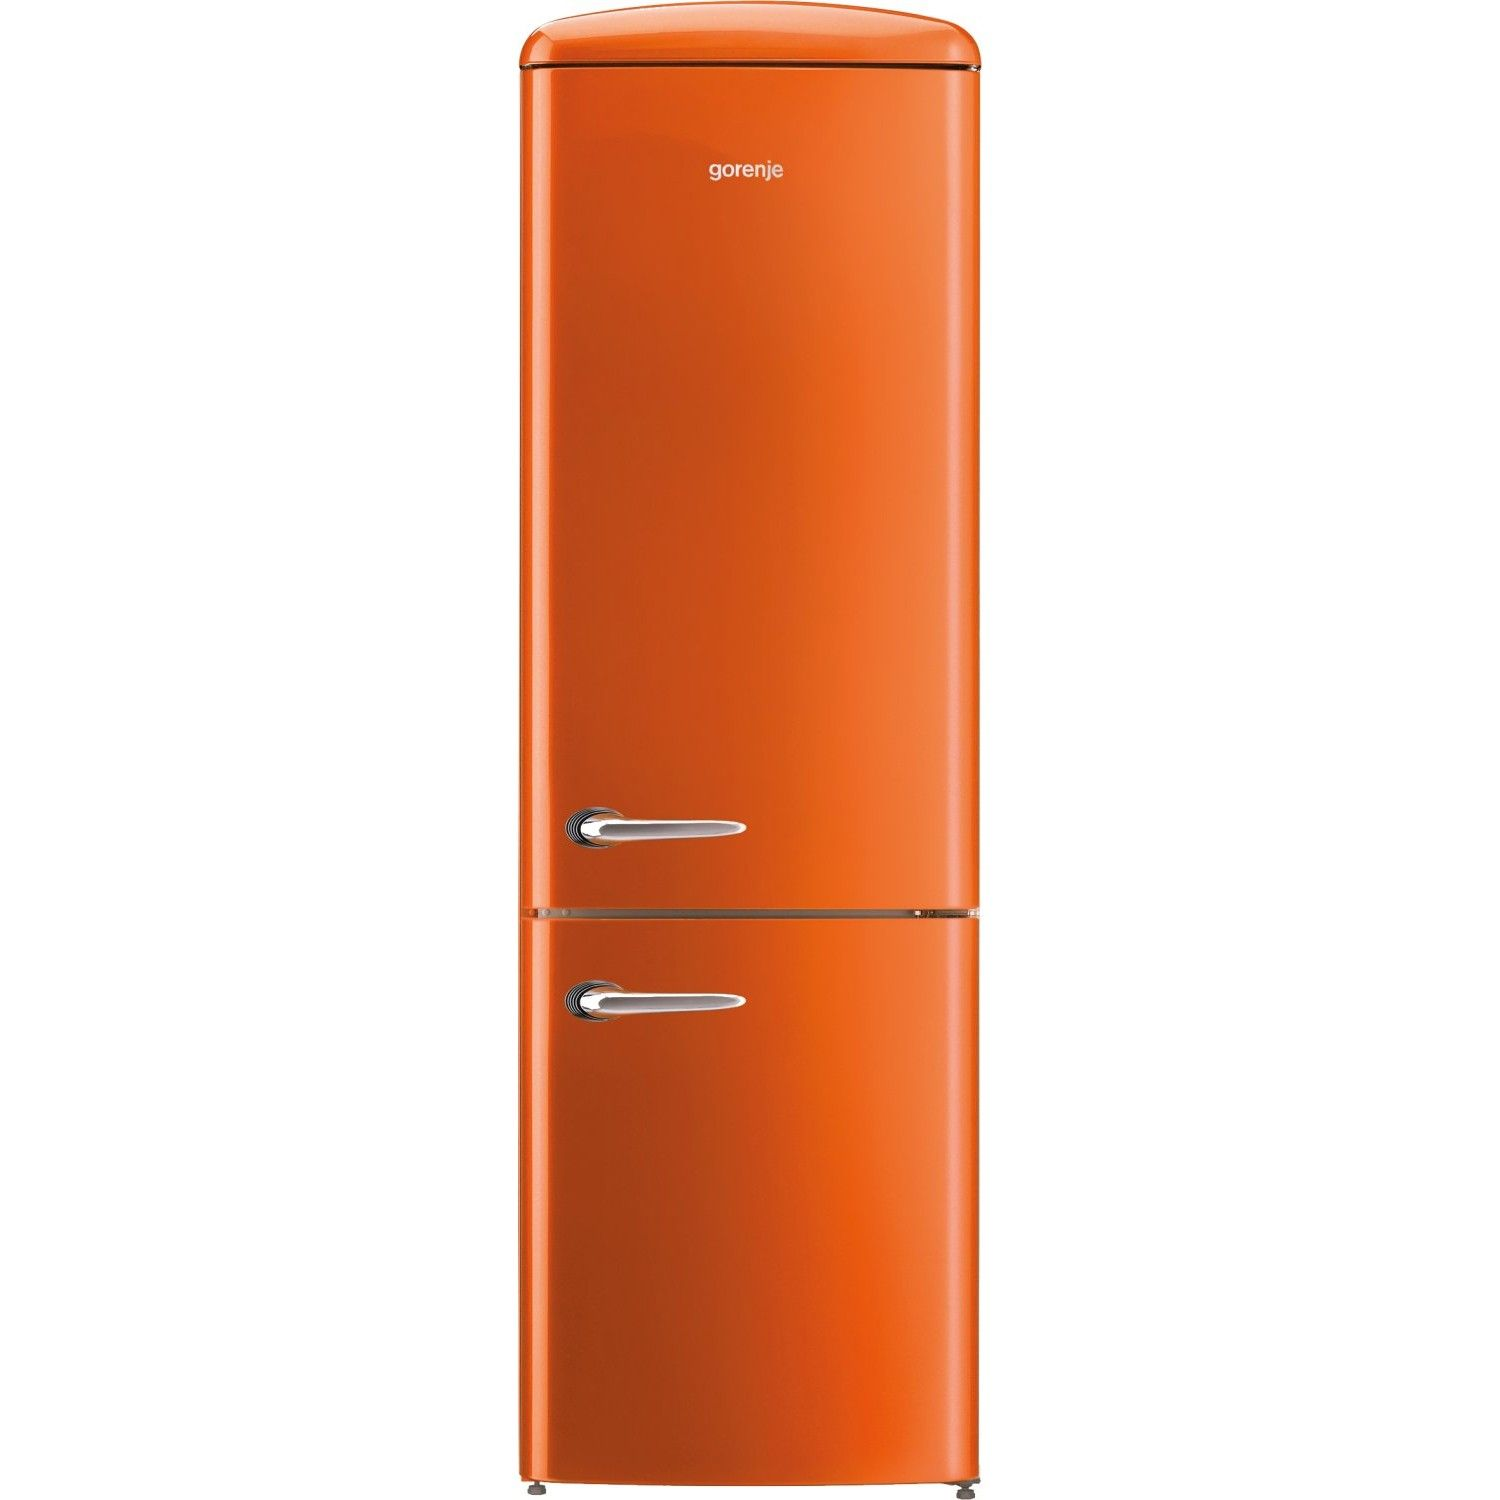 gorenje ORK193O 188.7cm Retro Freestanding Juicy Orange Fridge ...